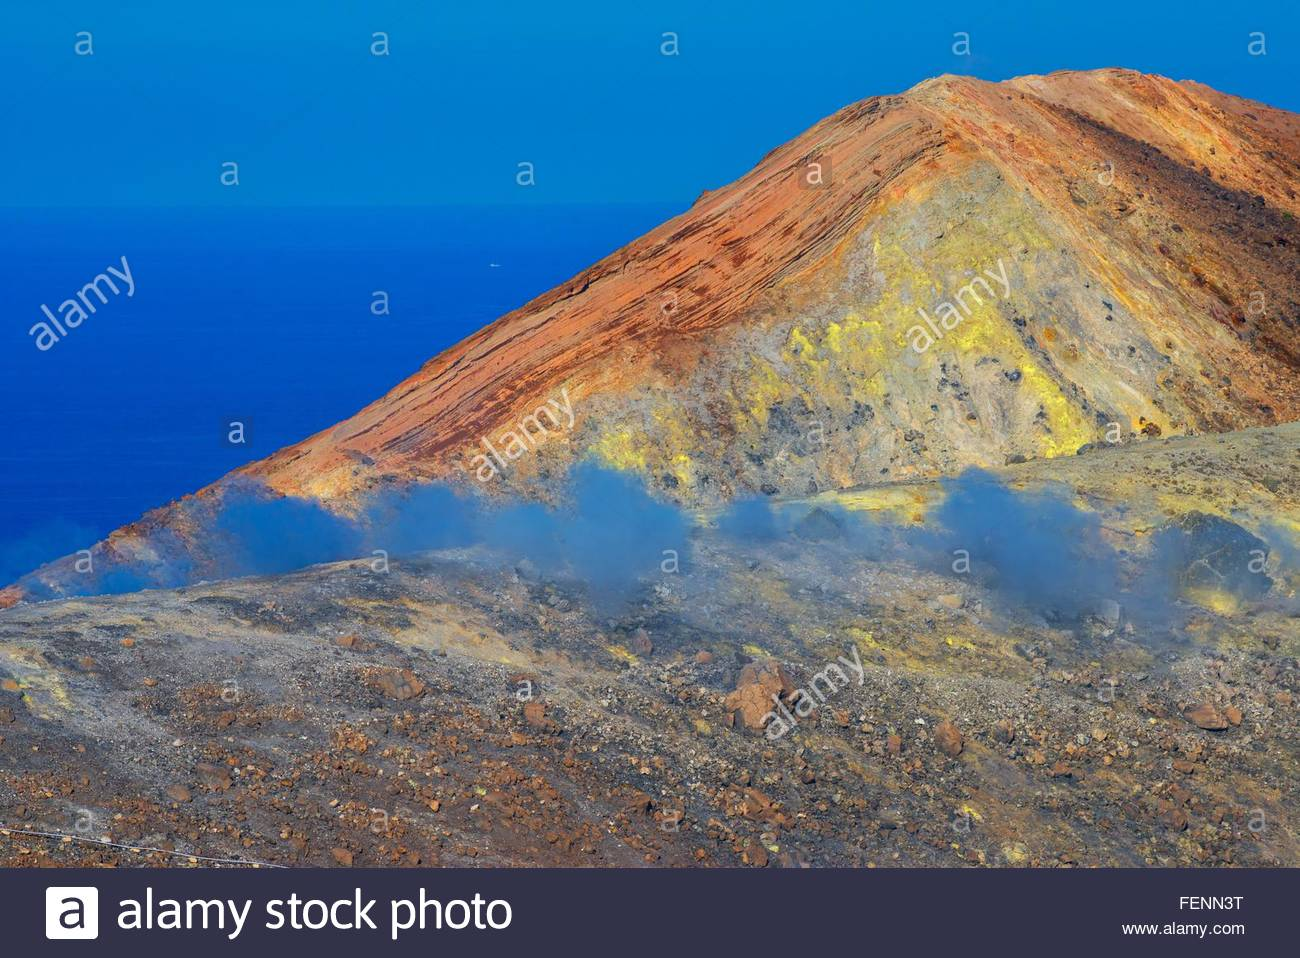 View of coast fumarole and sulphur smoke at Gran Cratere, Vulcano Island, Aeolian Islands, Sicily, Italy - Stock Image